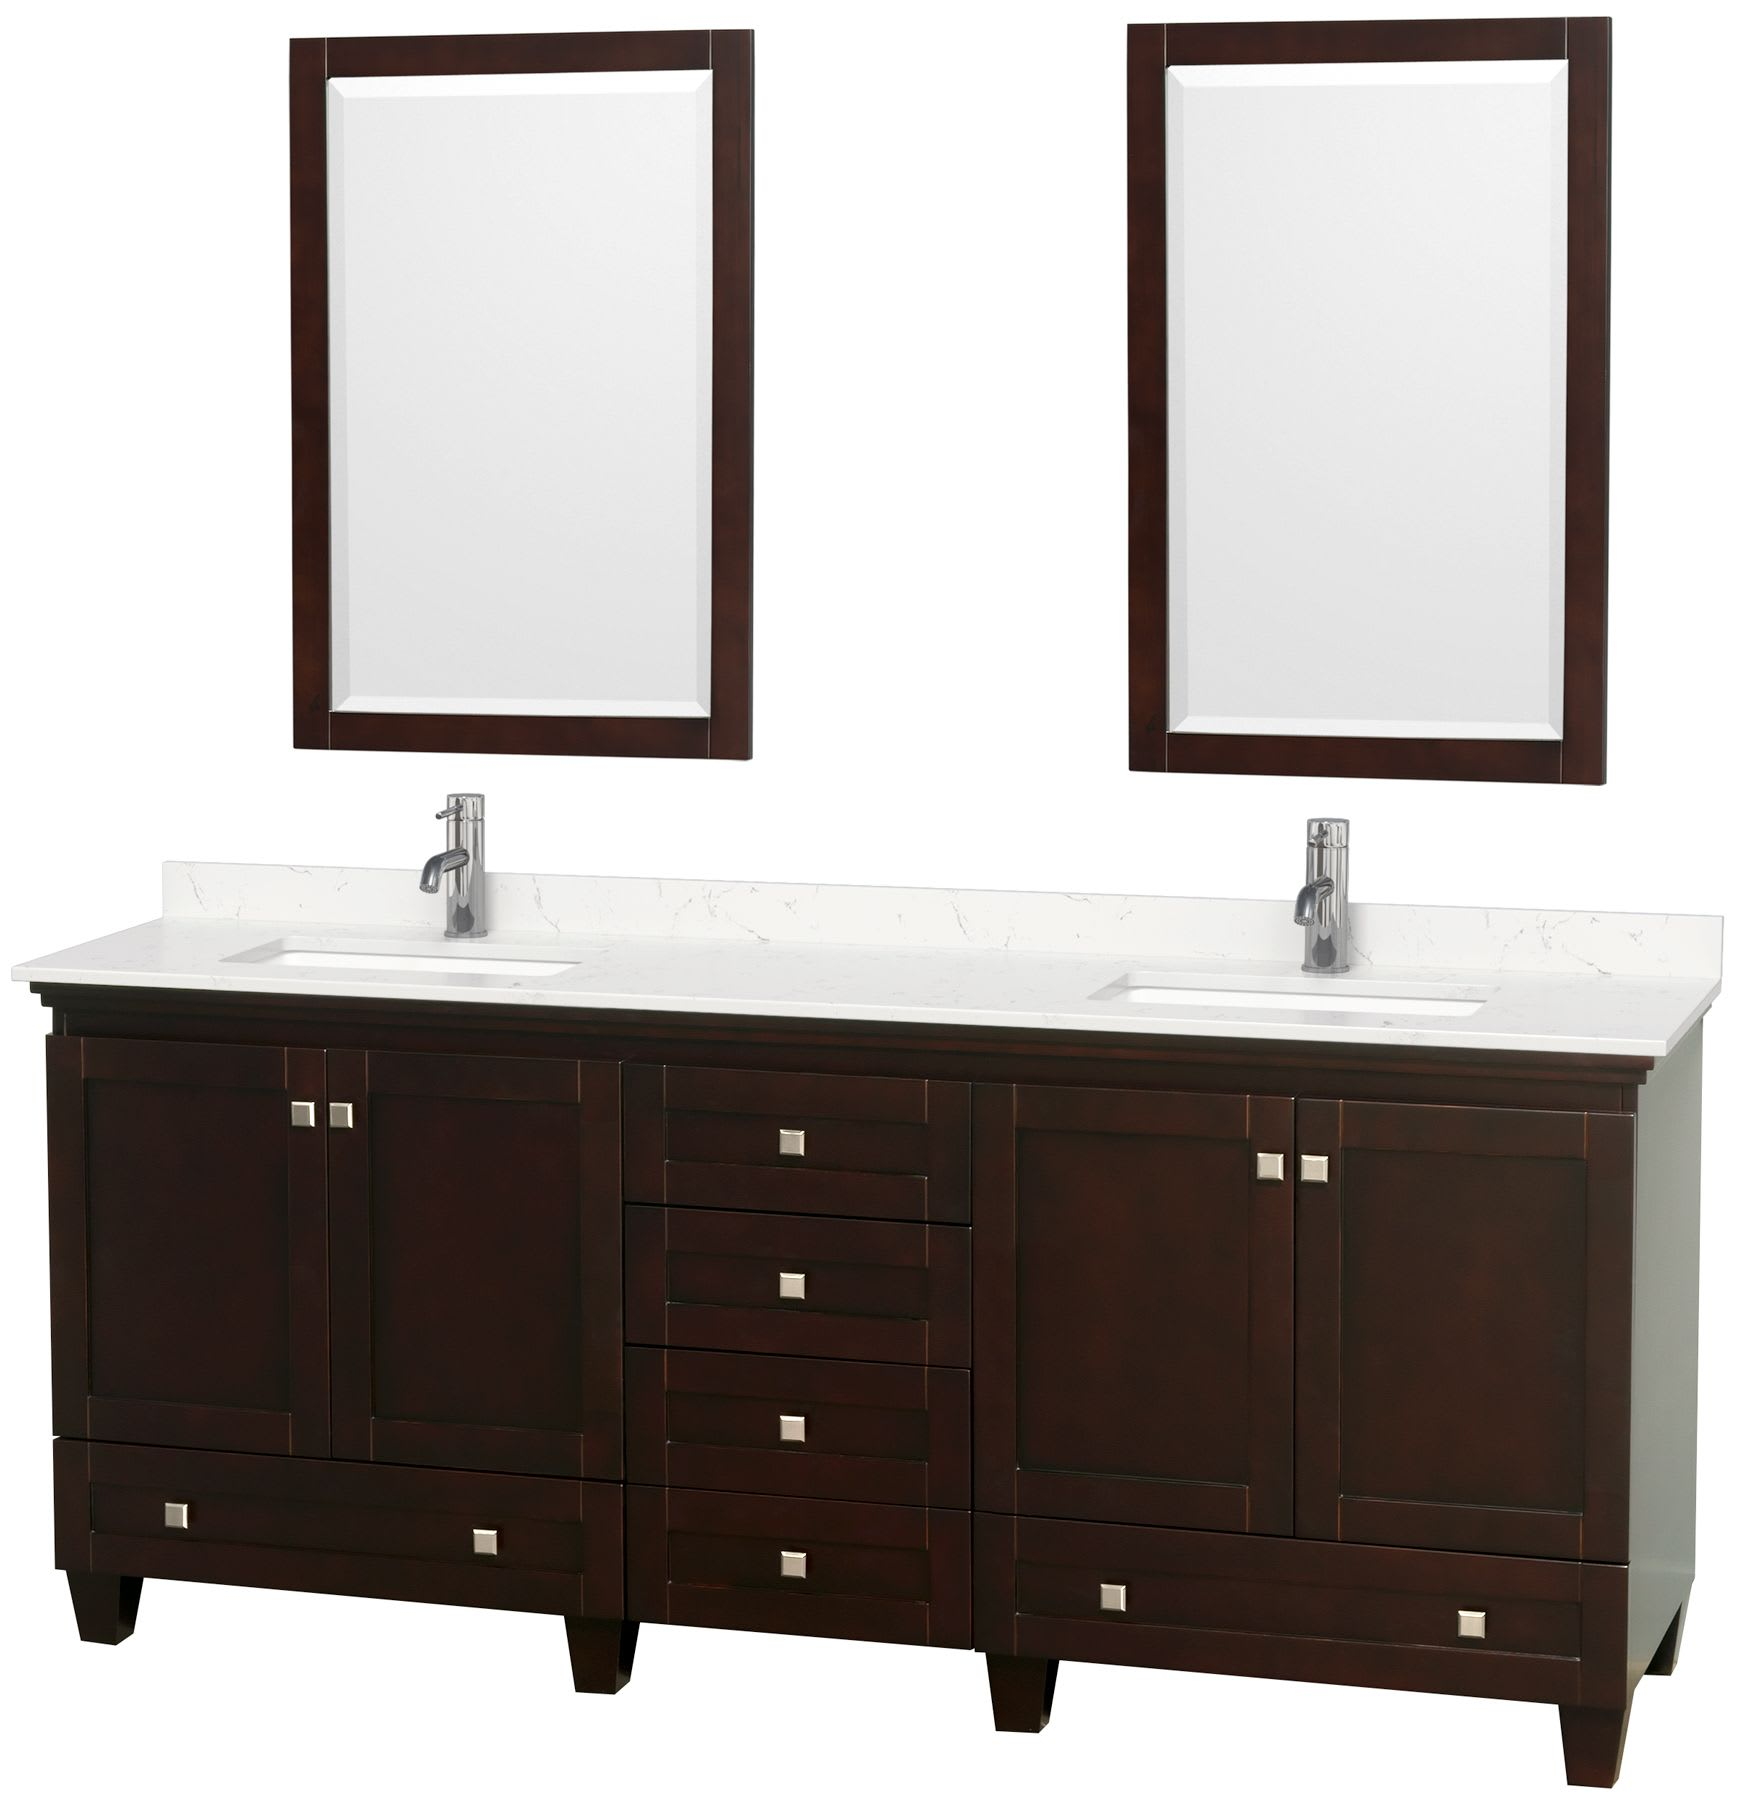 Wyndham Collection Wcv800080desc2unsm24 Espresso Light Vein Carrara Top Acclaim 80 Inch Double Bathroom Vanity With Cultured Marble Countertop Undermount Square Sinks 24 Inch Mirrors Faucet Com